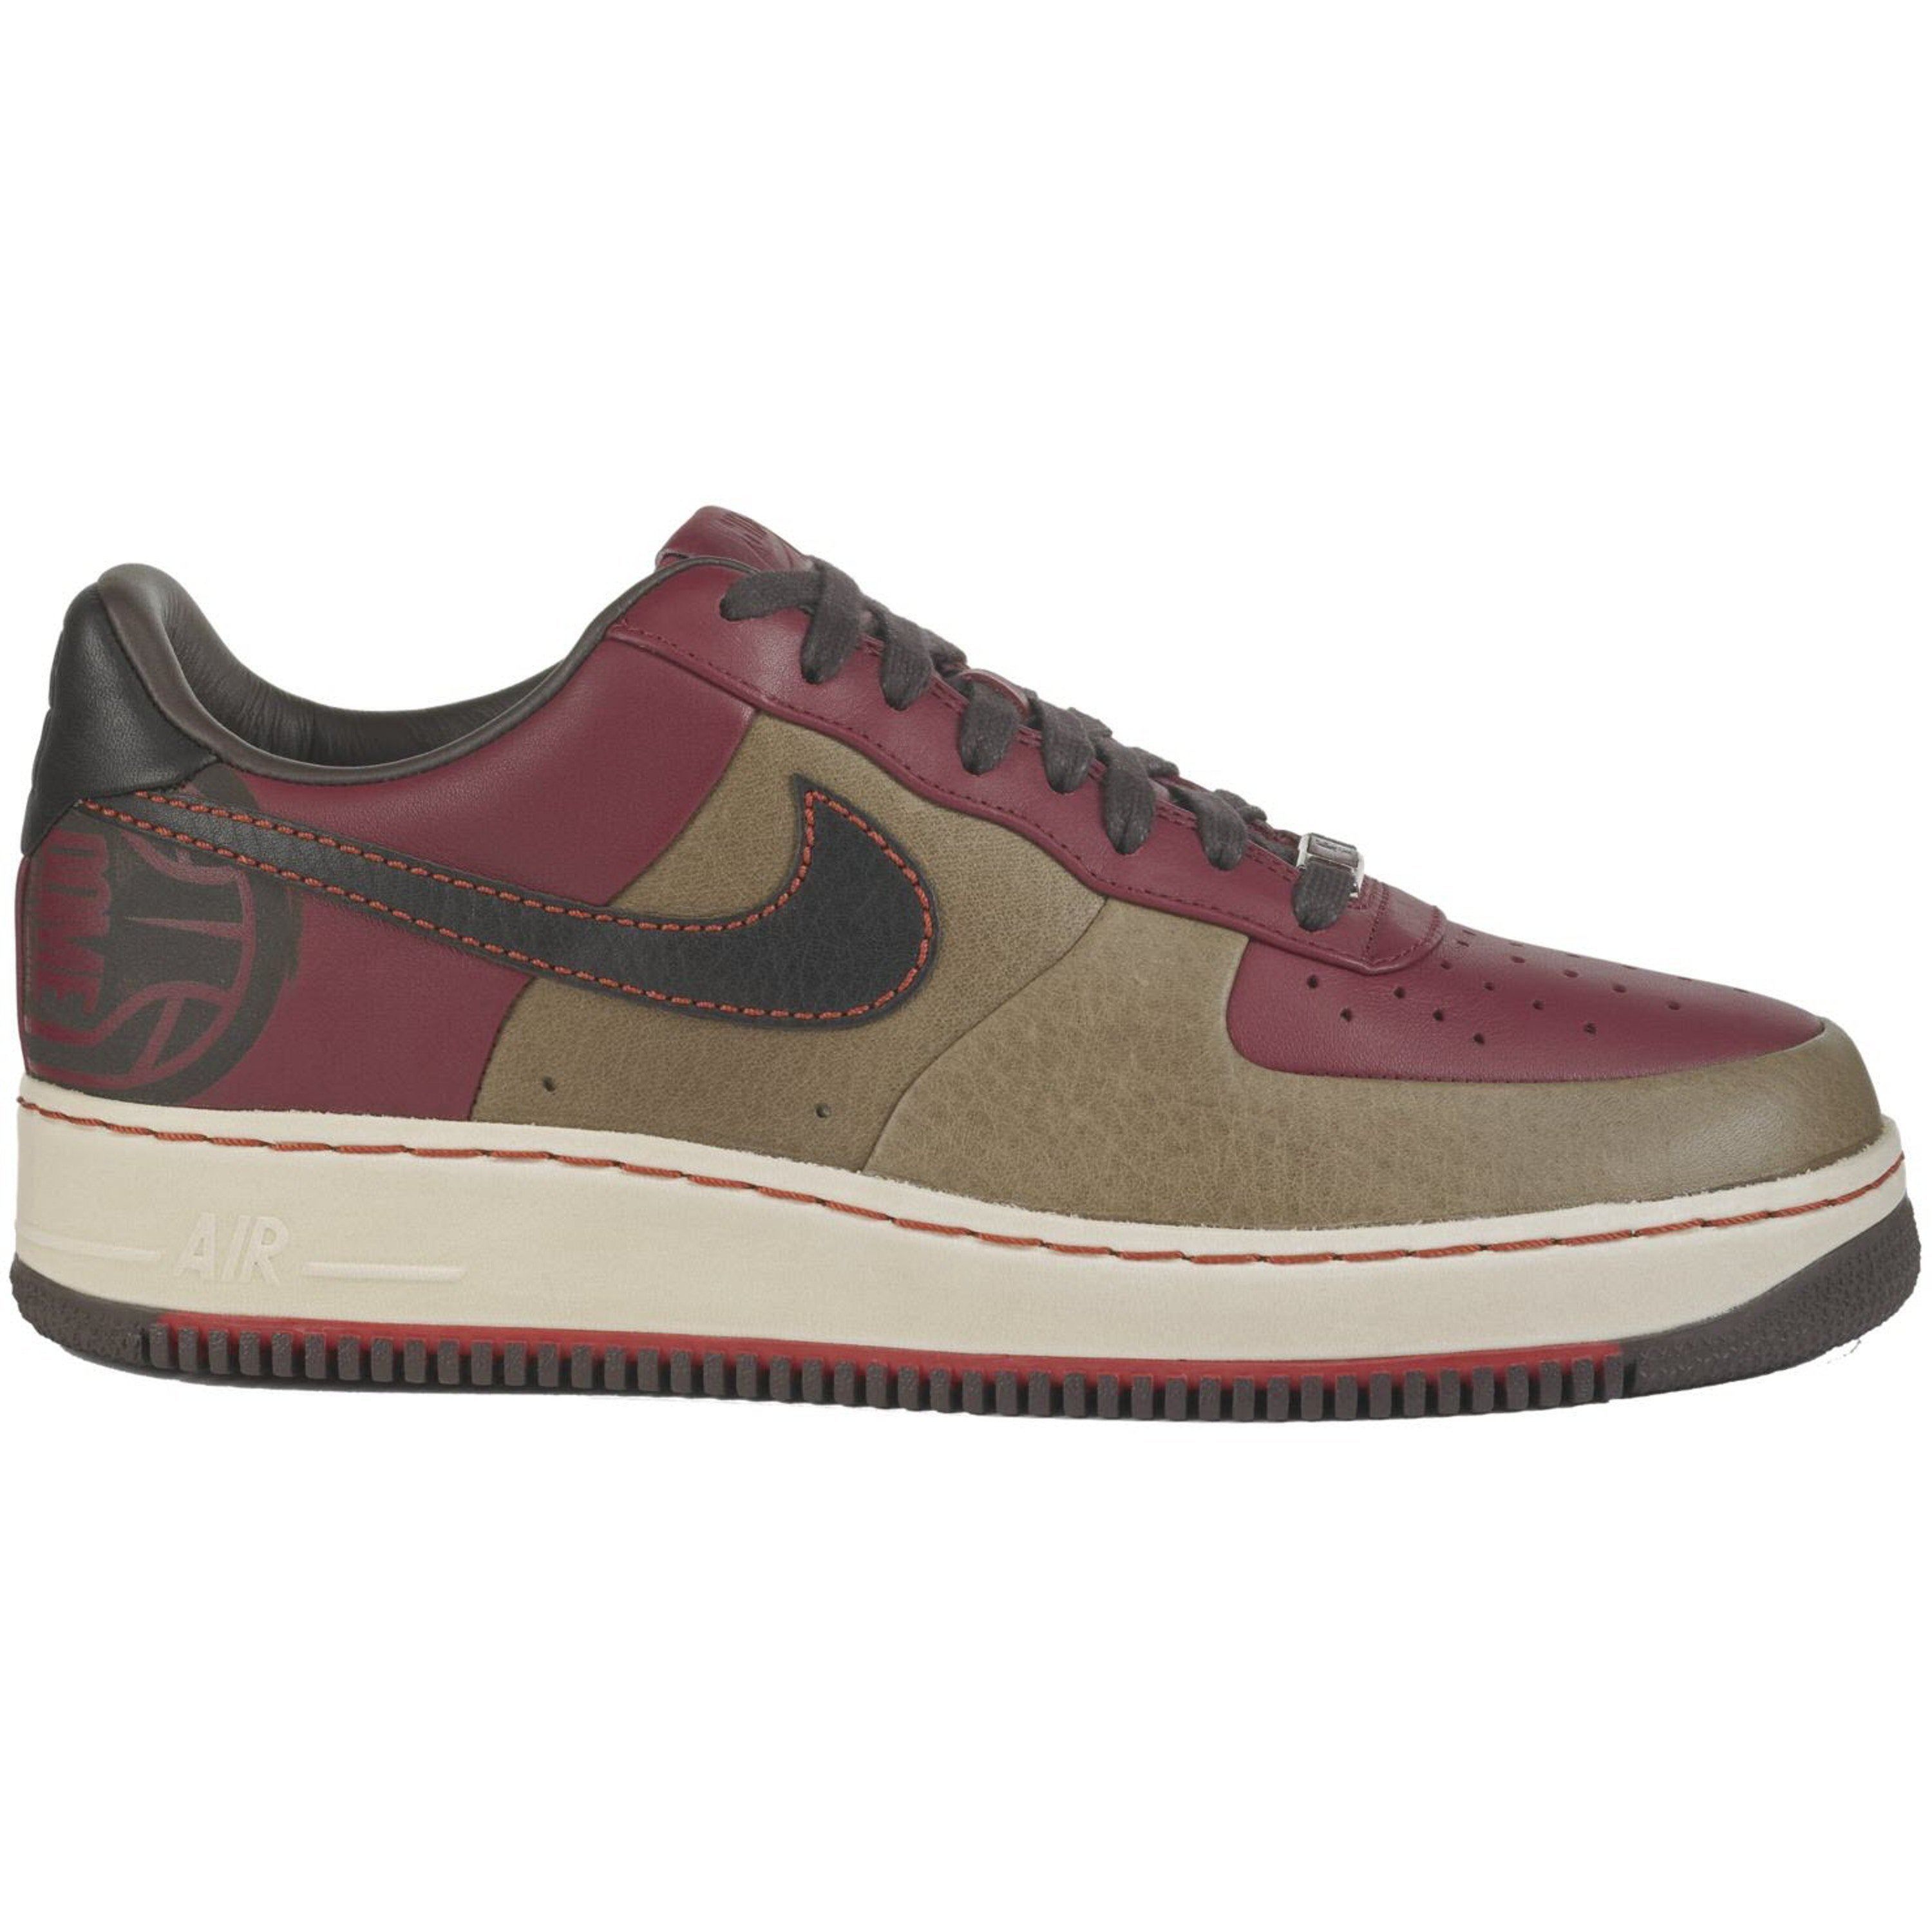 Nike Air Force 1 Low The Dome Baltimore (316077-621)